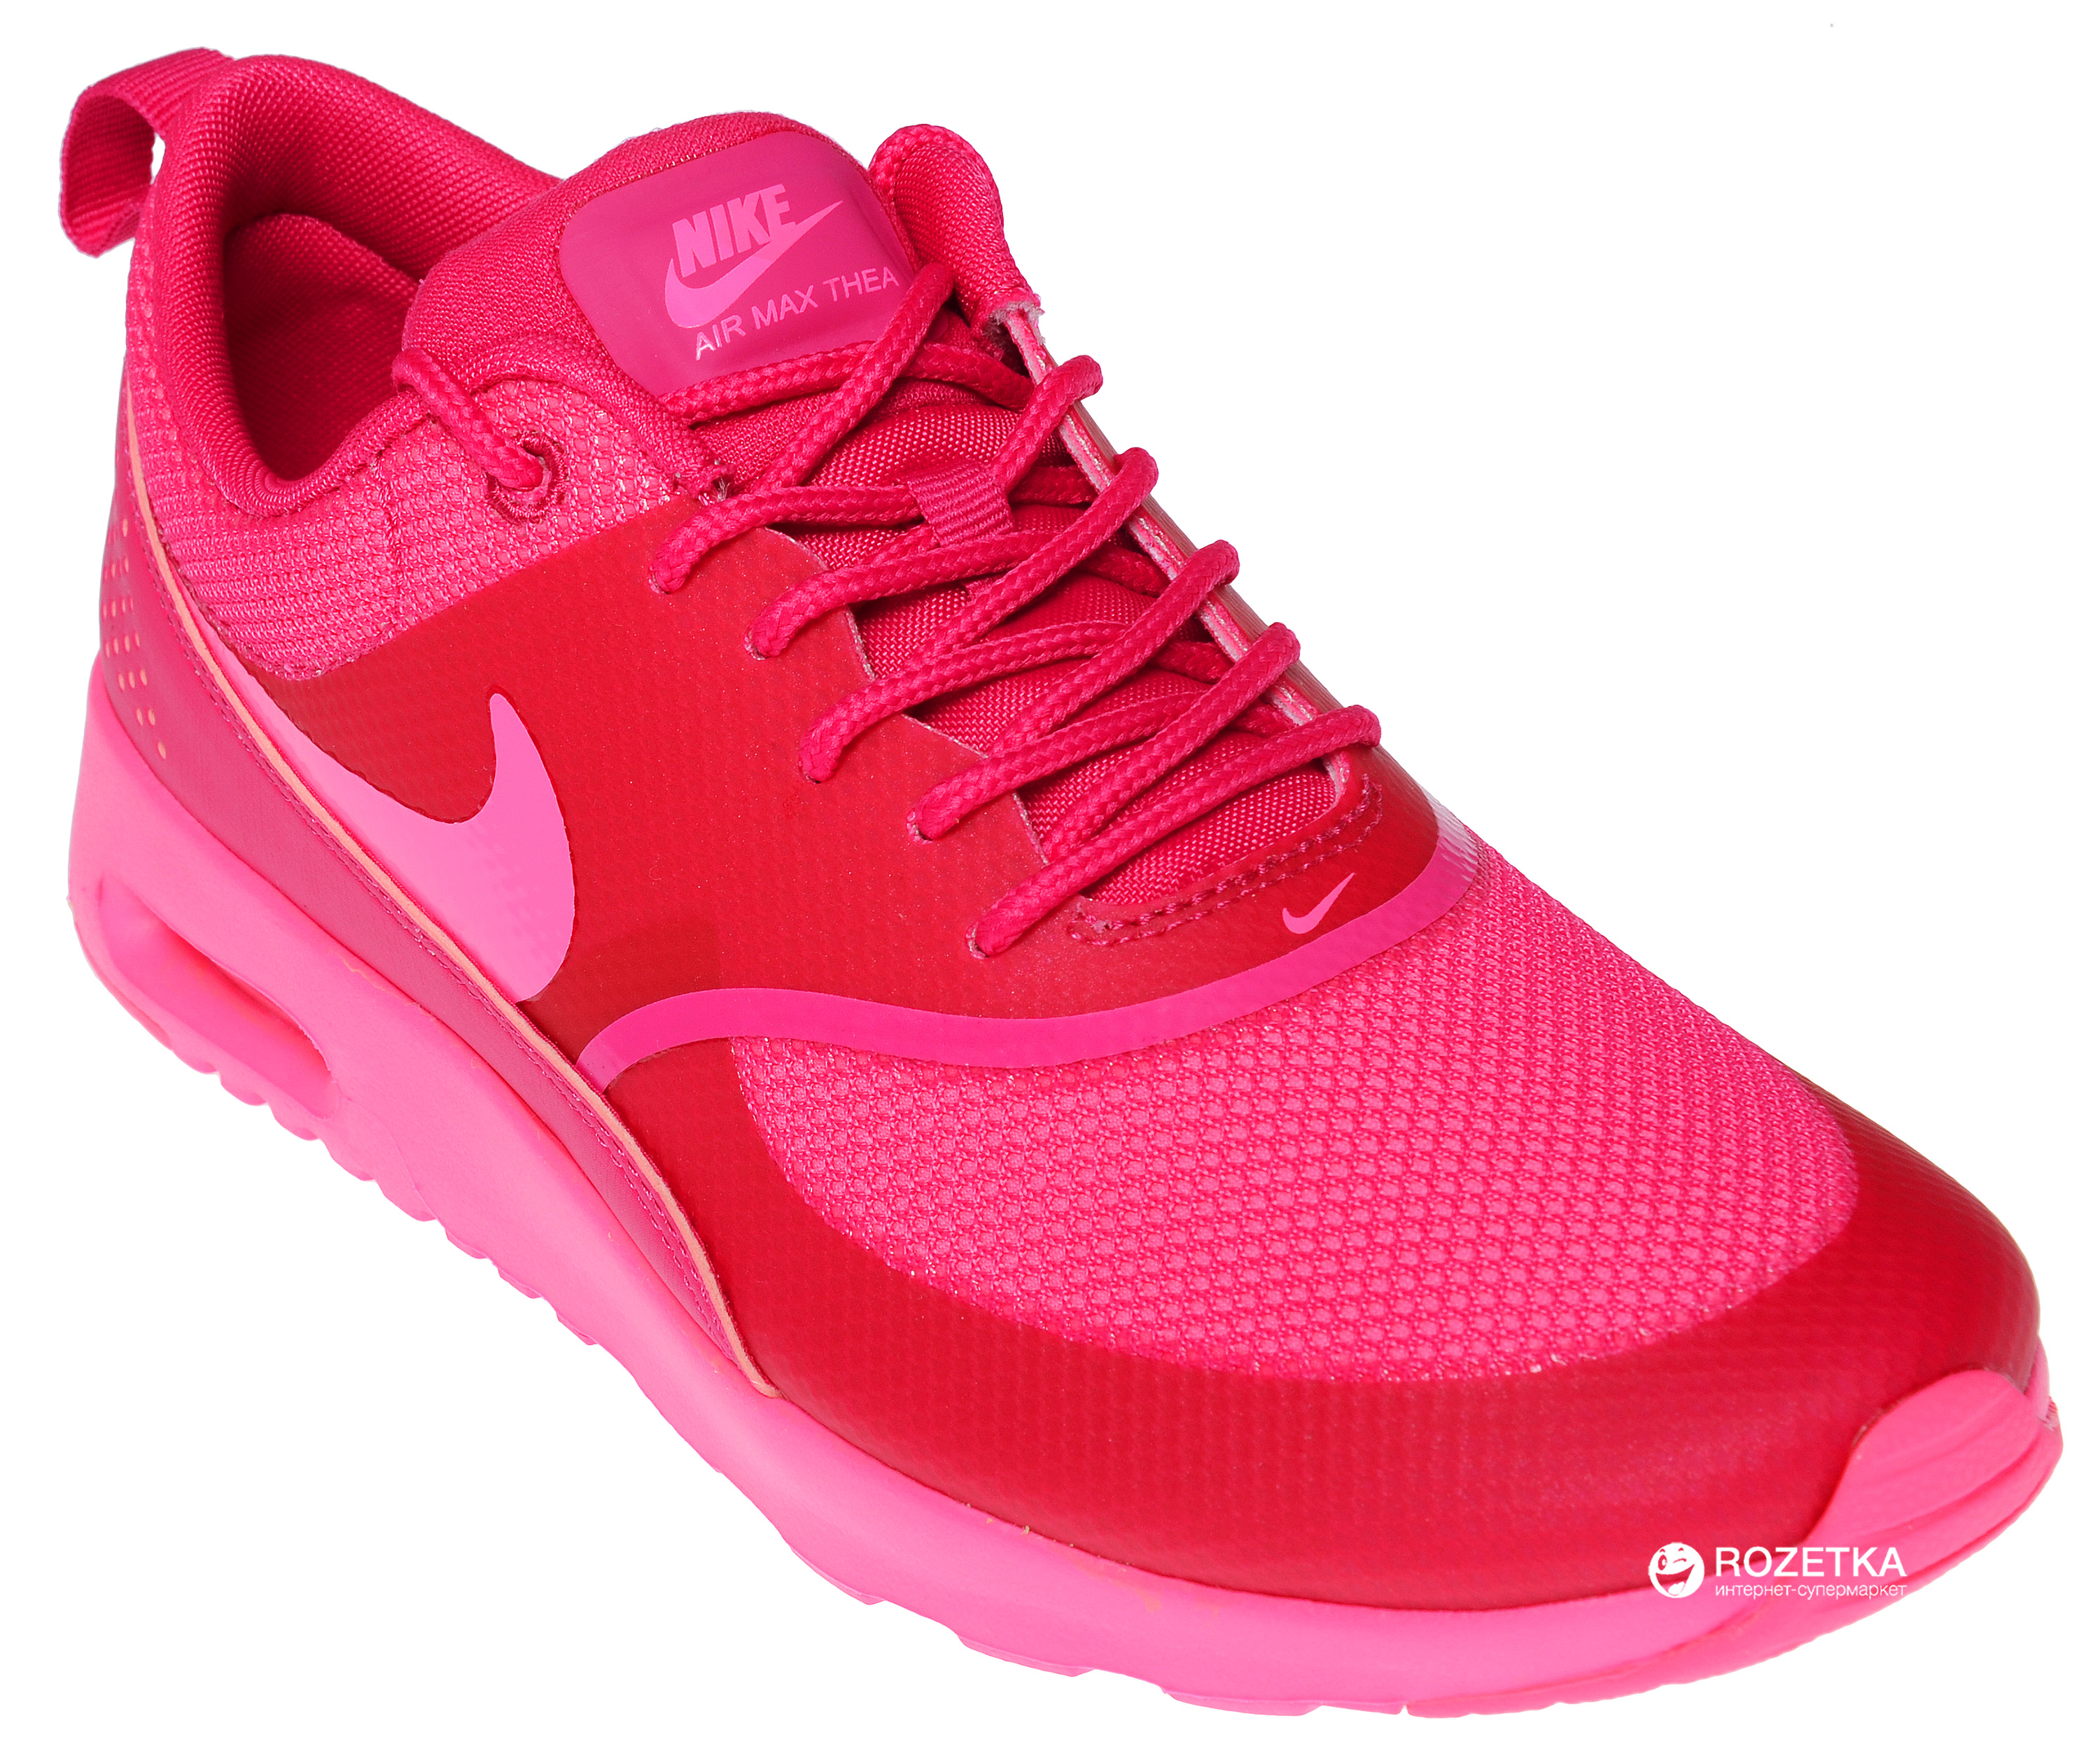 Shop the wide selection of Nike cheerleading shoes at Omni Cheer for trusted quality and quick delivery.